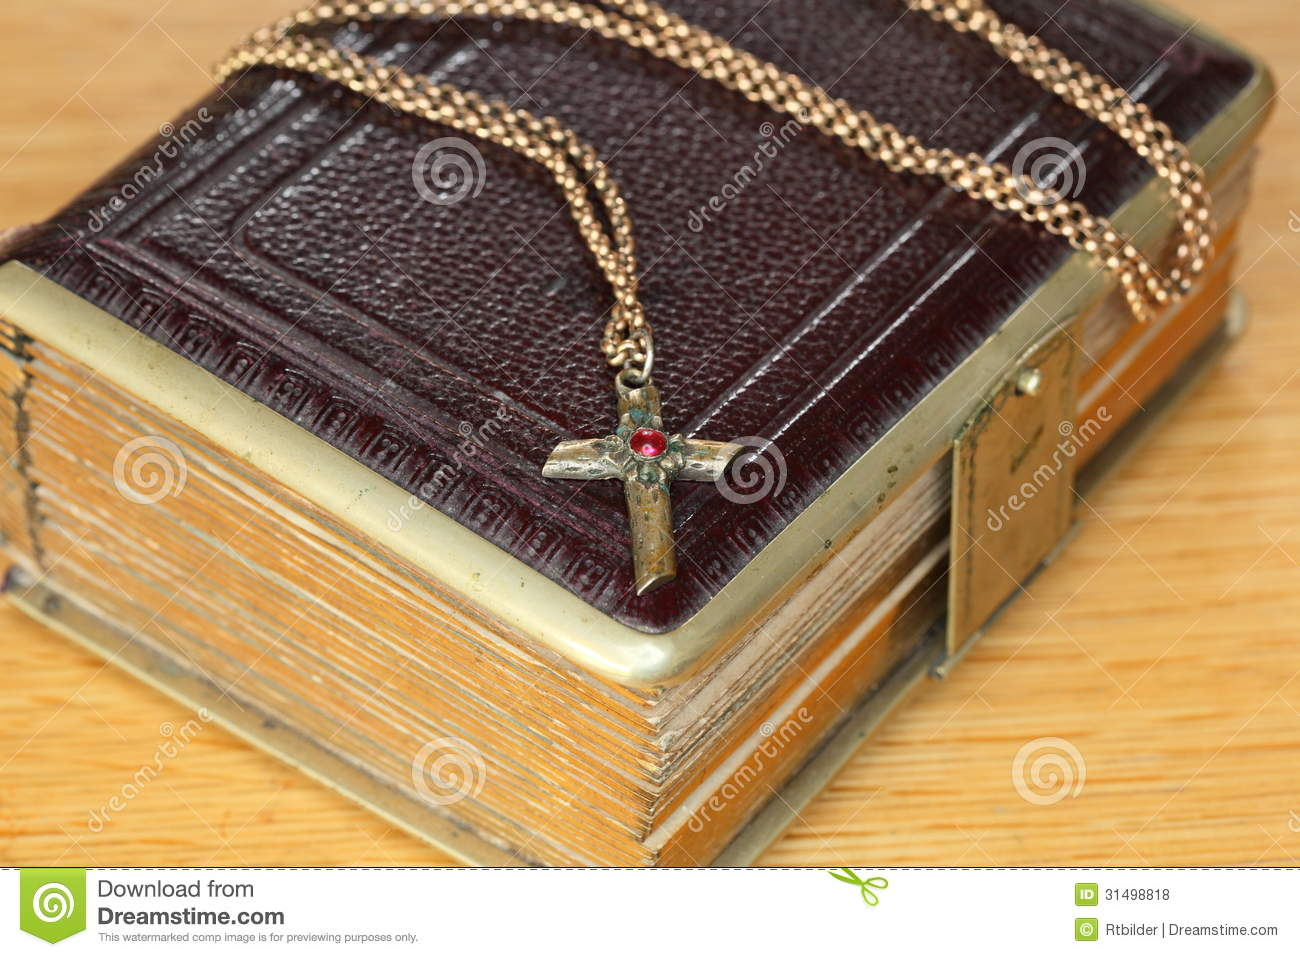 religious things royalty free stock photos image 31498818 free 3d clipart for powerpoint free 3d clipart